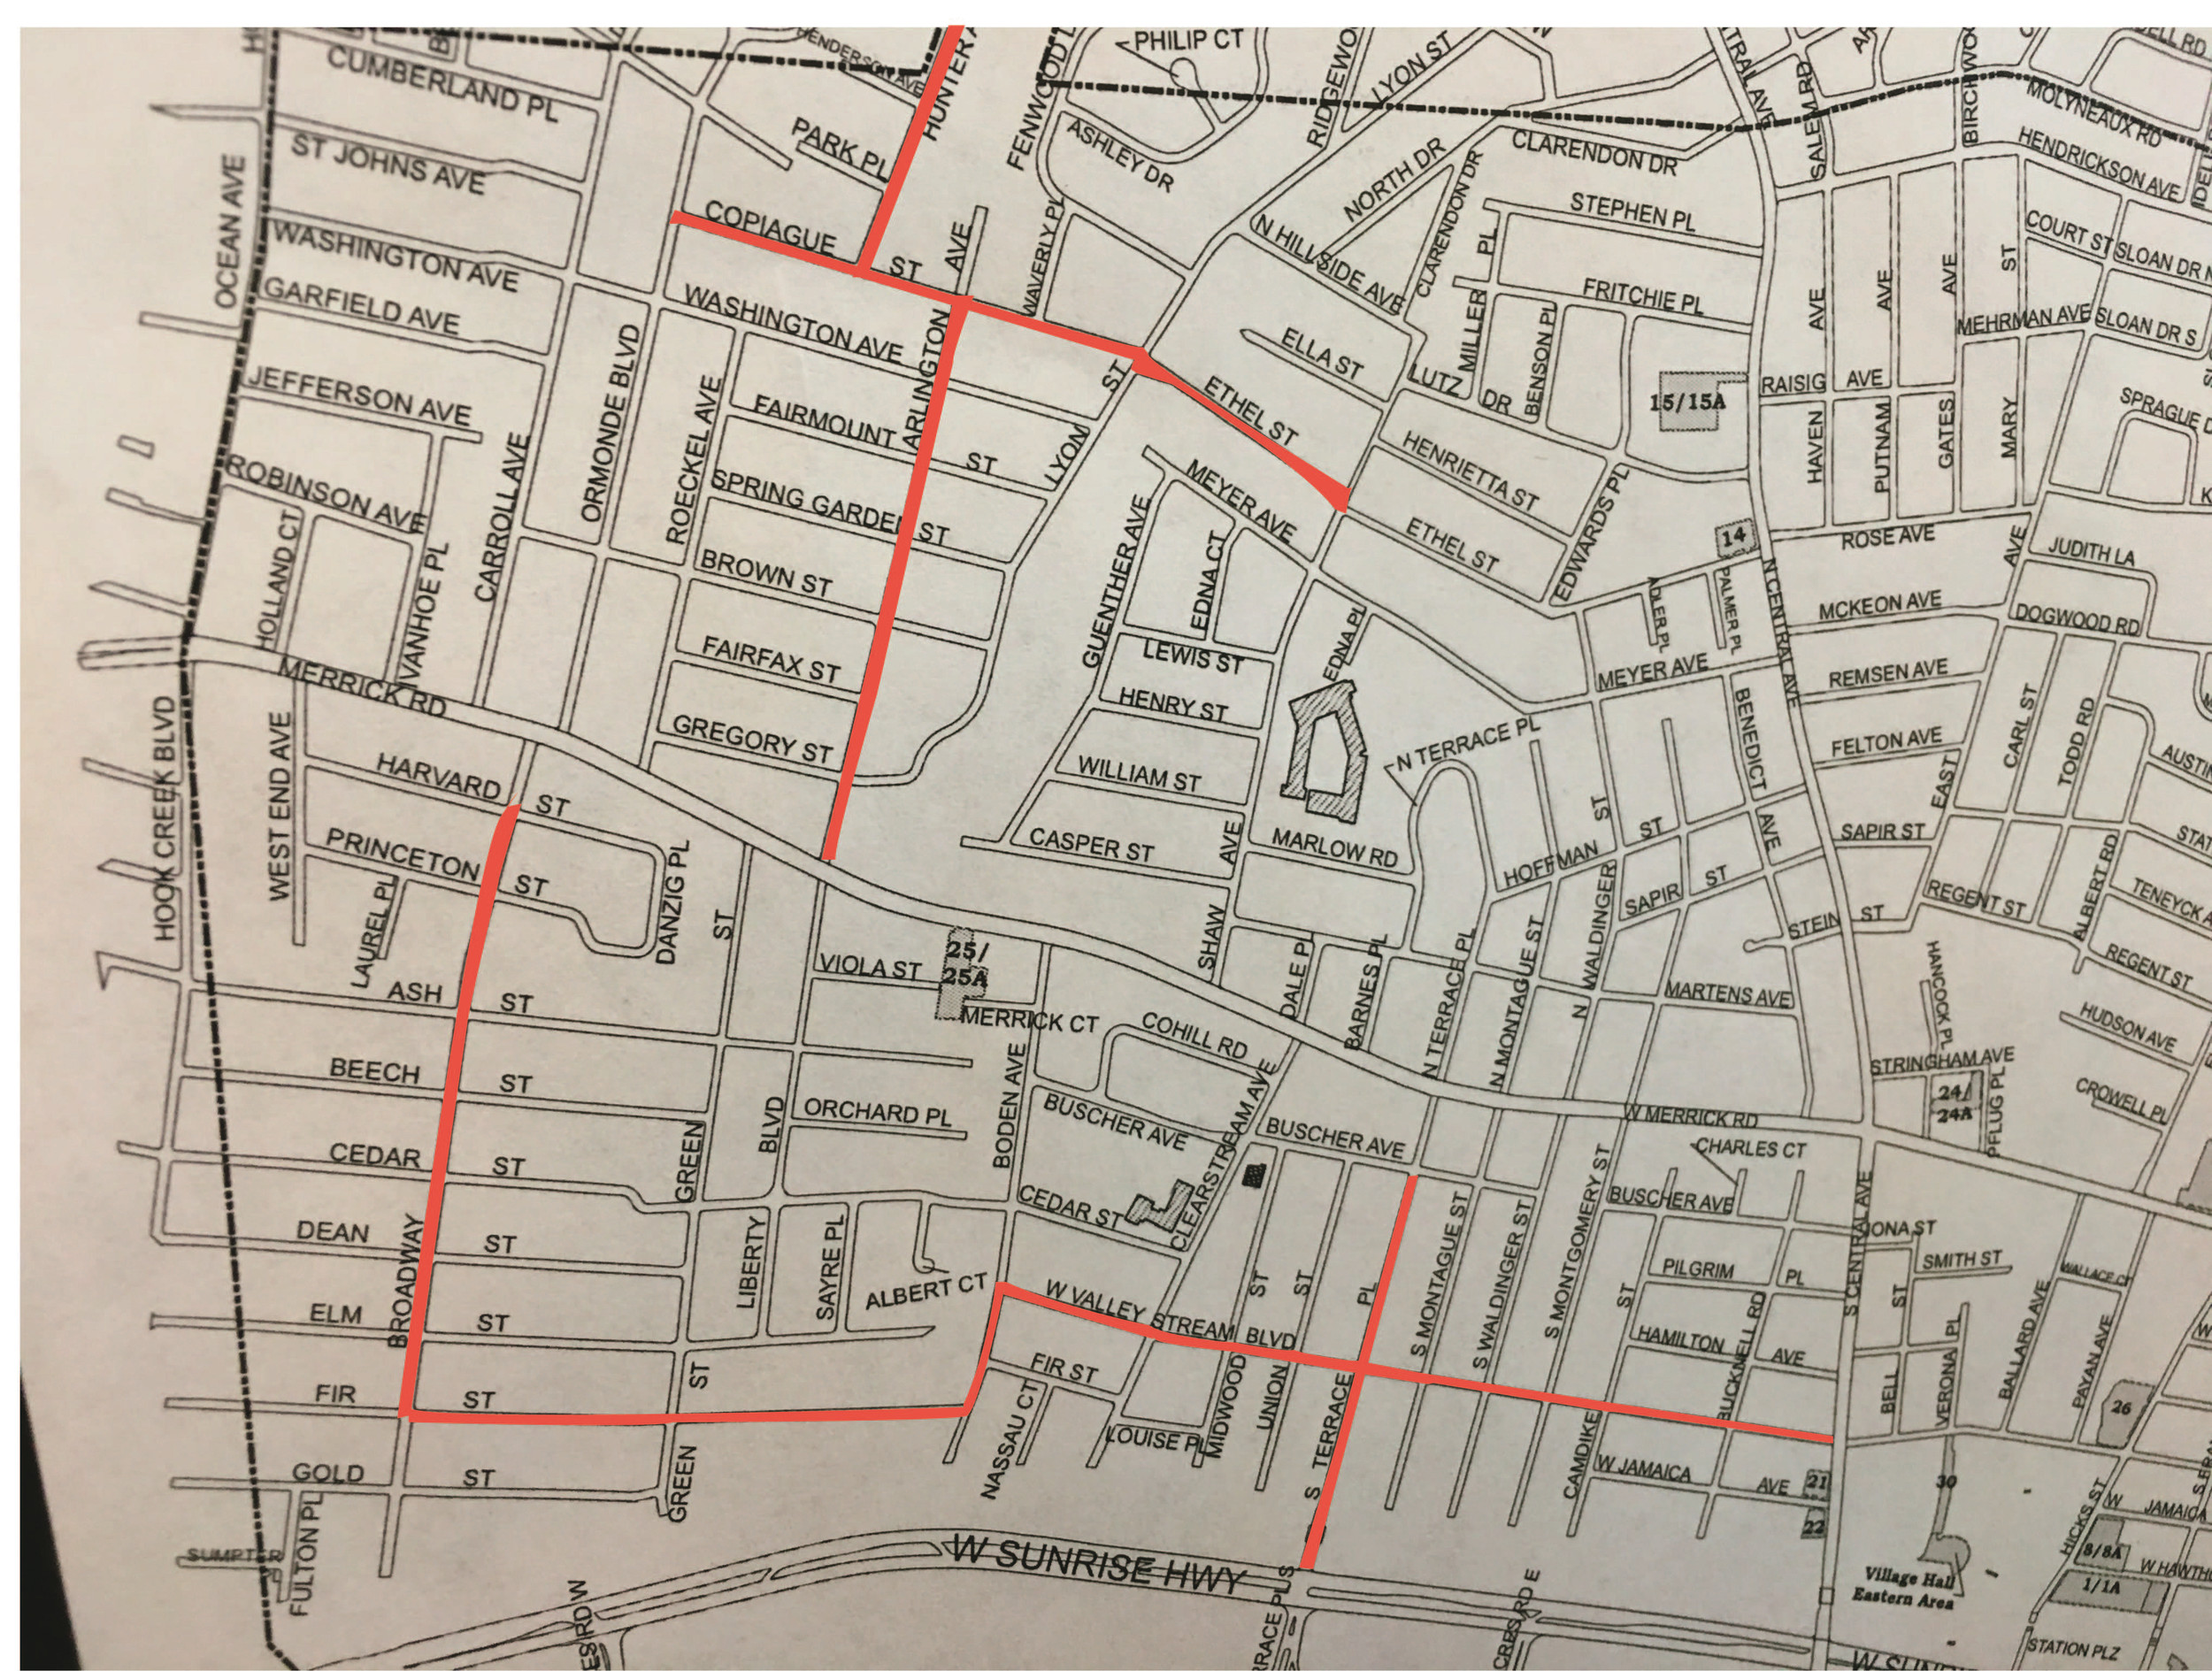 This map shows which streets will have utility poles and wires replaced.